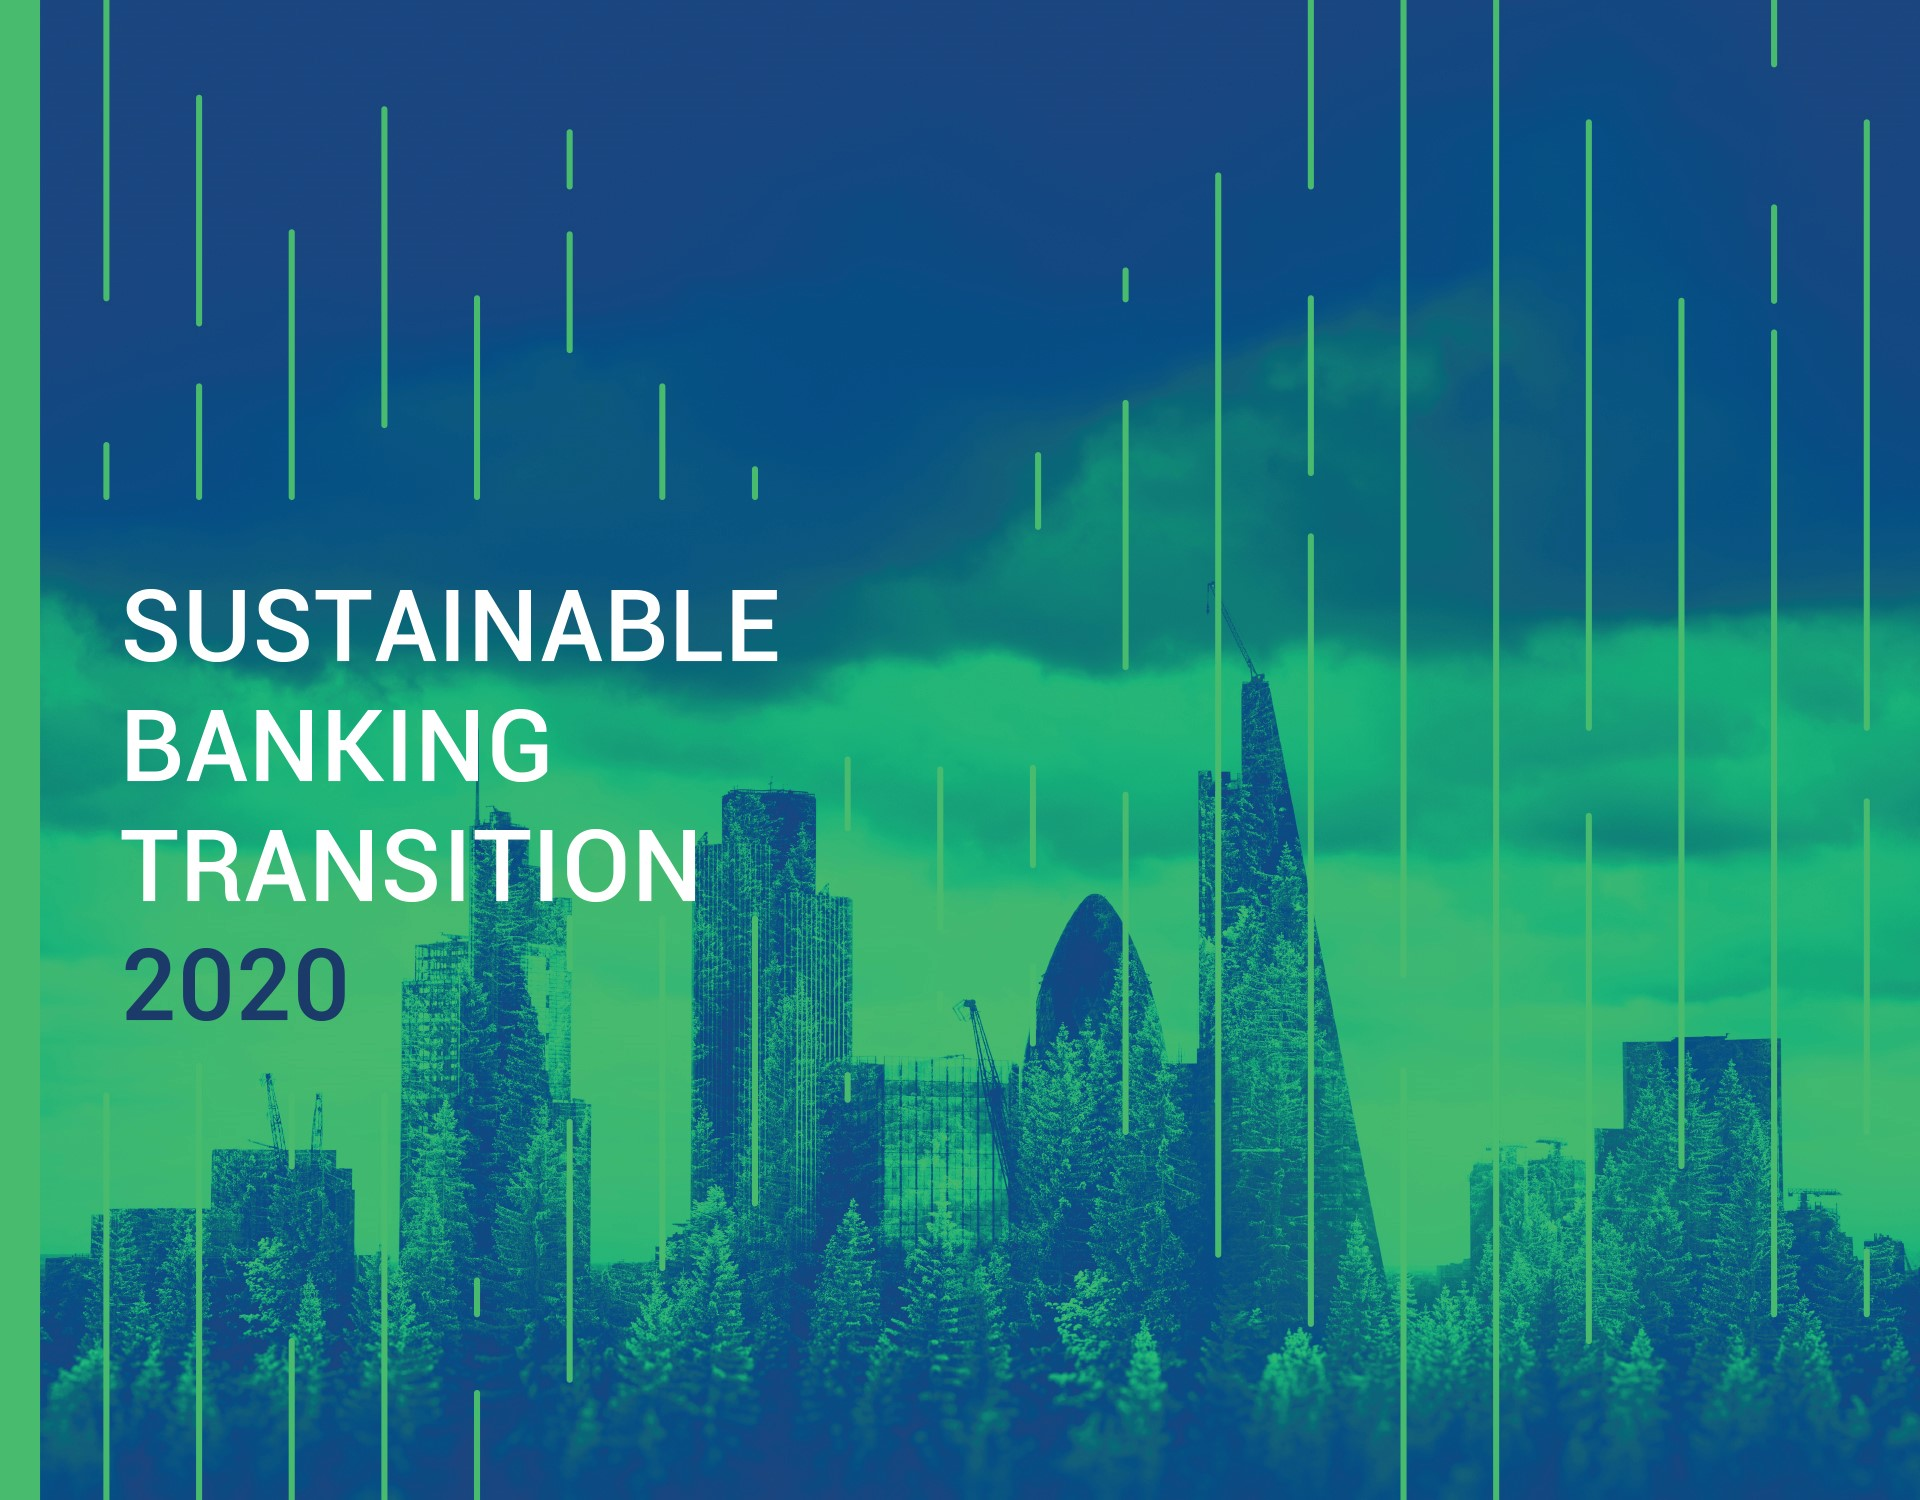 Rapporto Sustainable Banking Transition - SUSTAINABILITY? A NEW NORMAL BANKING